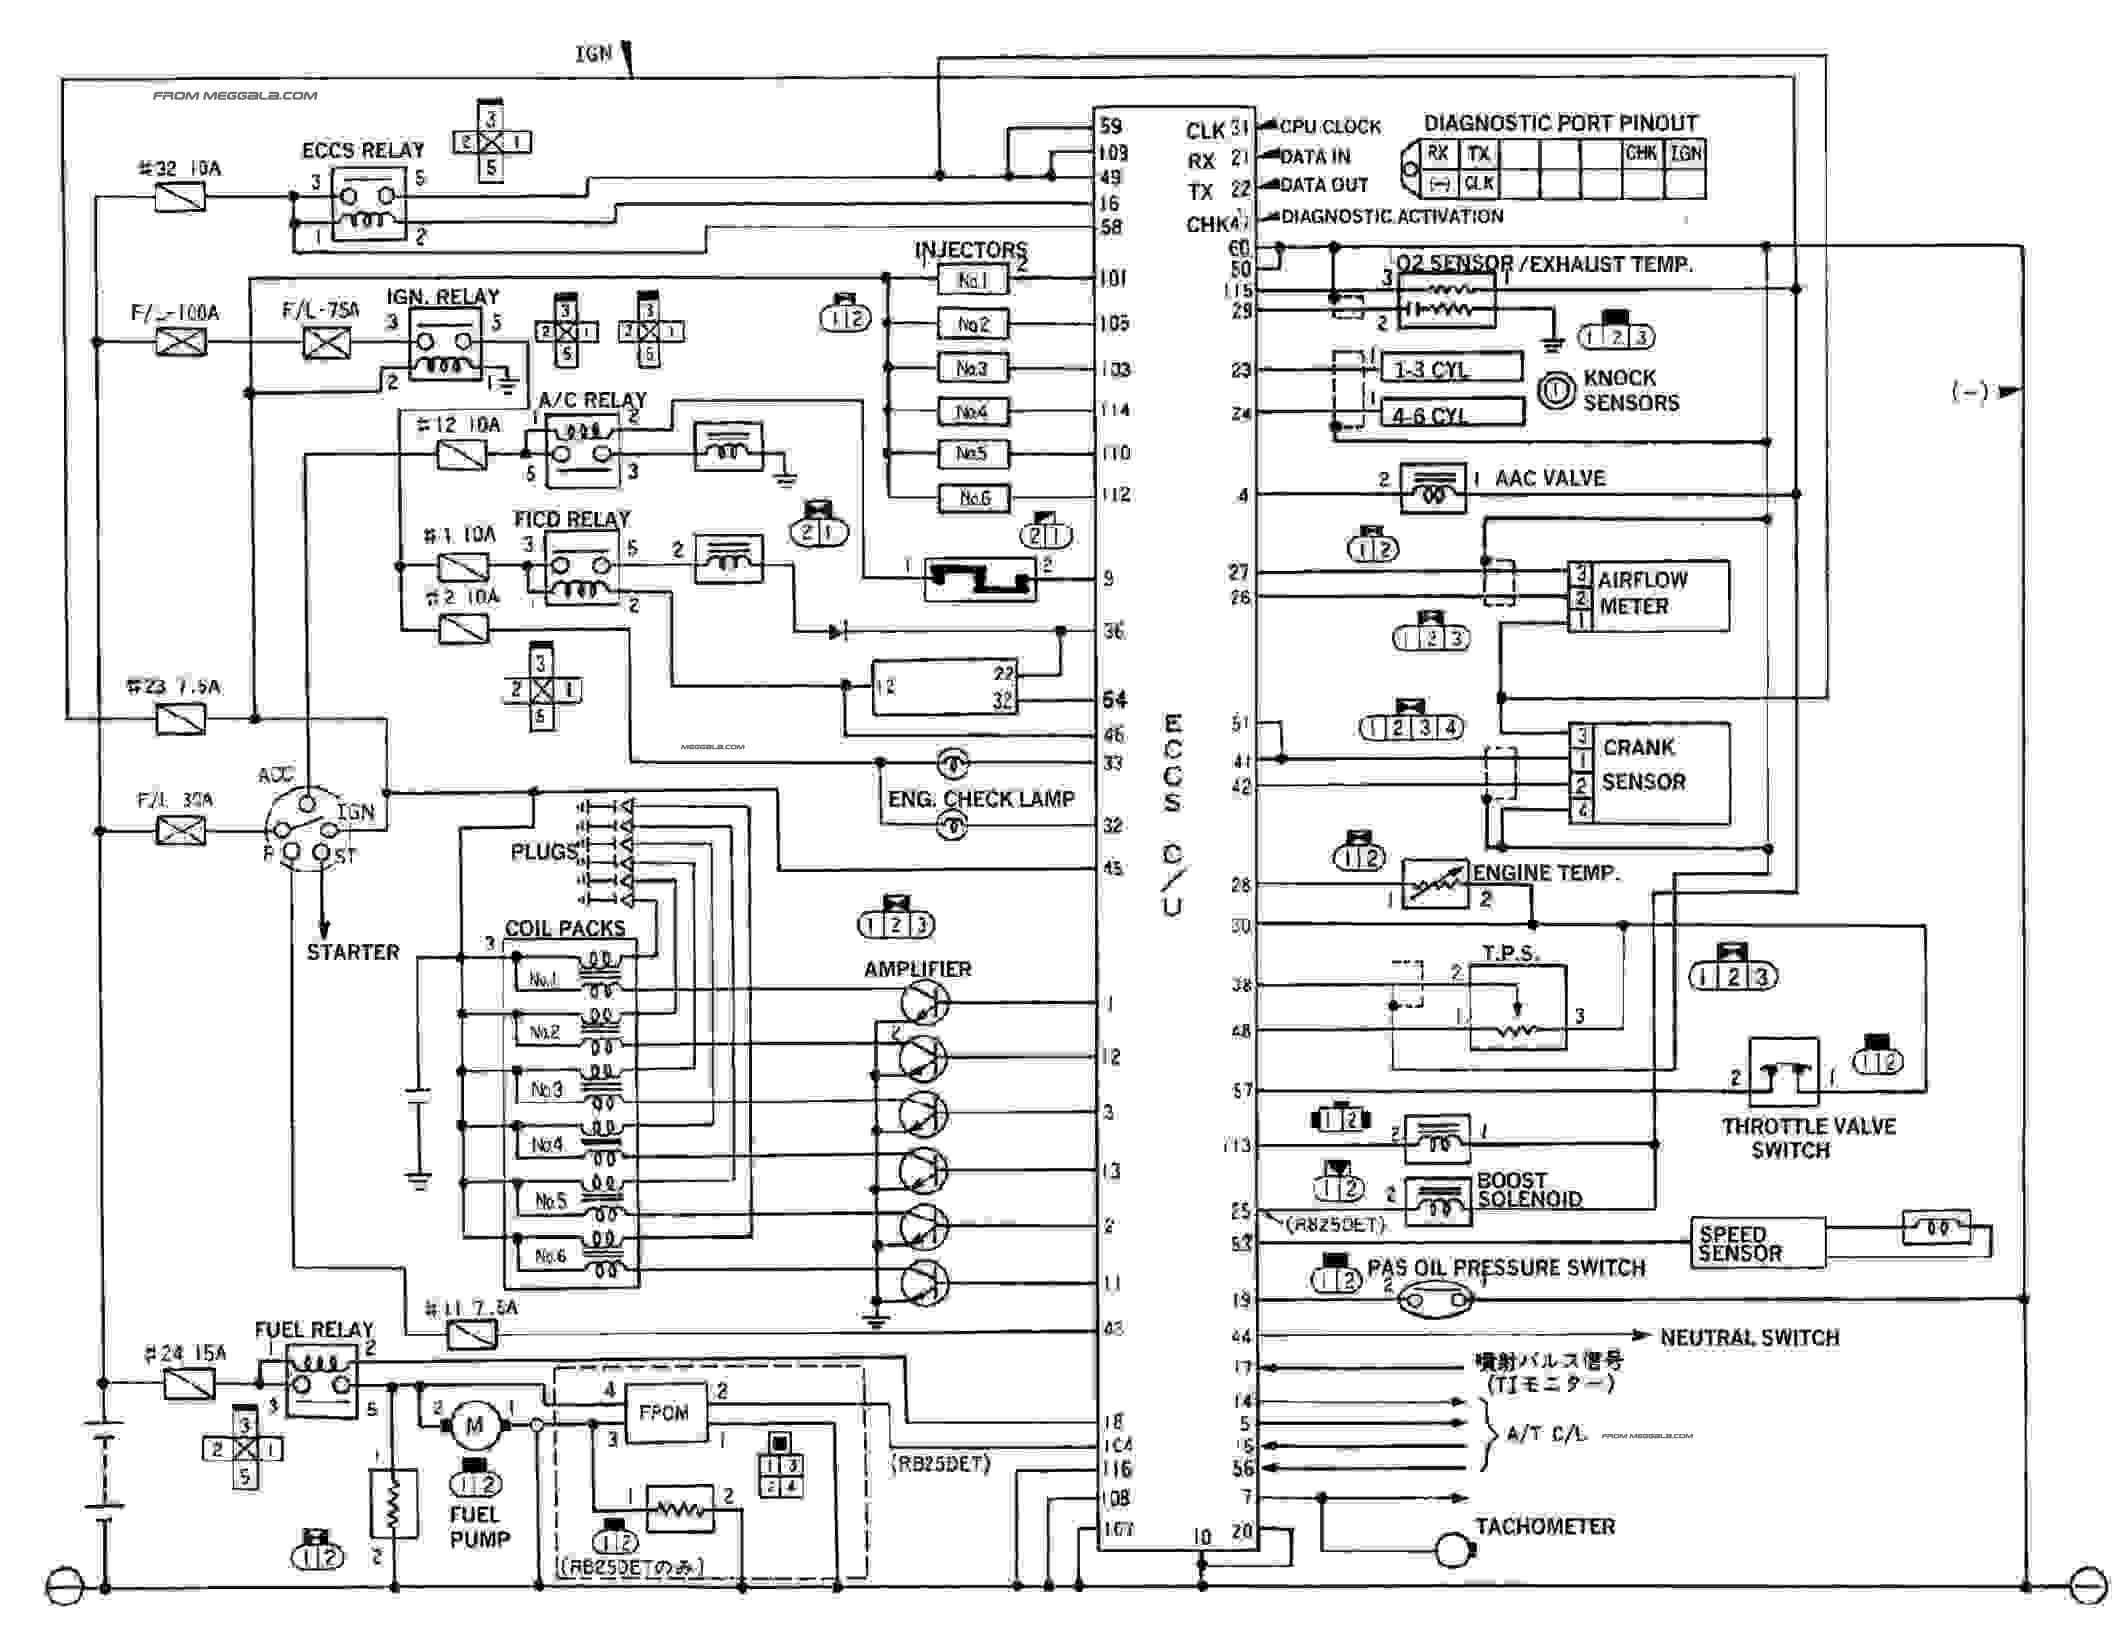 r32 engine diagram 5 19 artatec automobile de \u2022